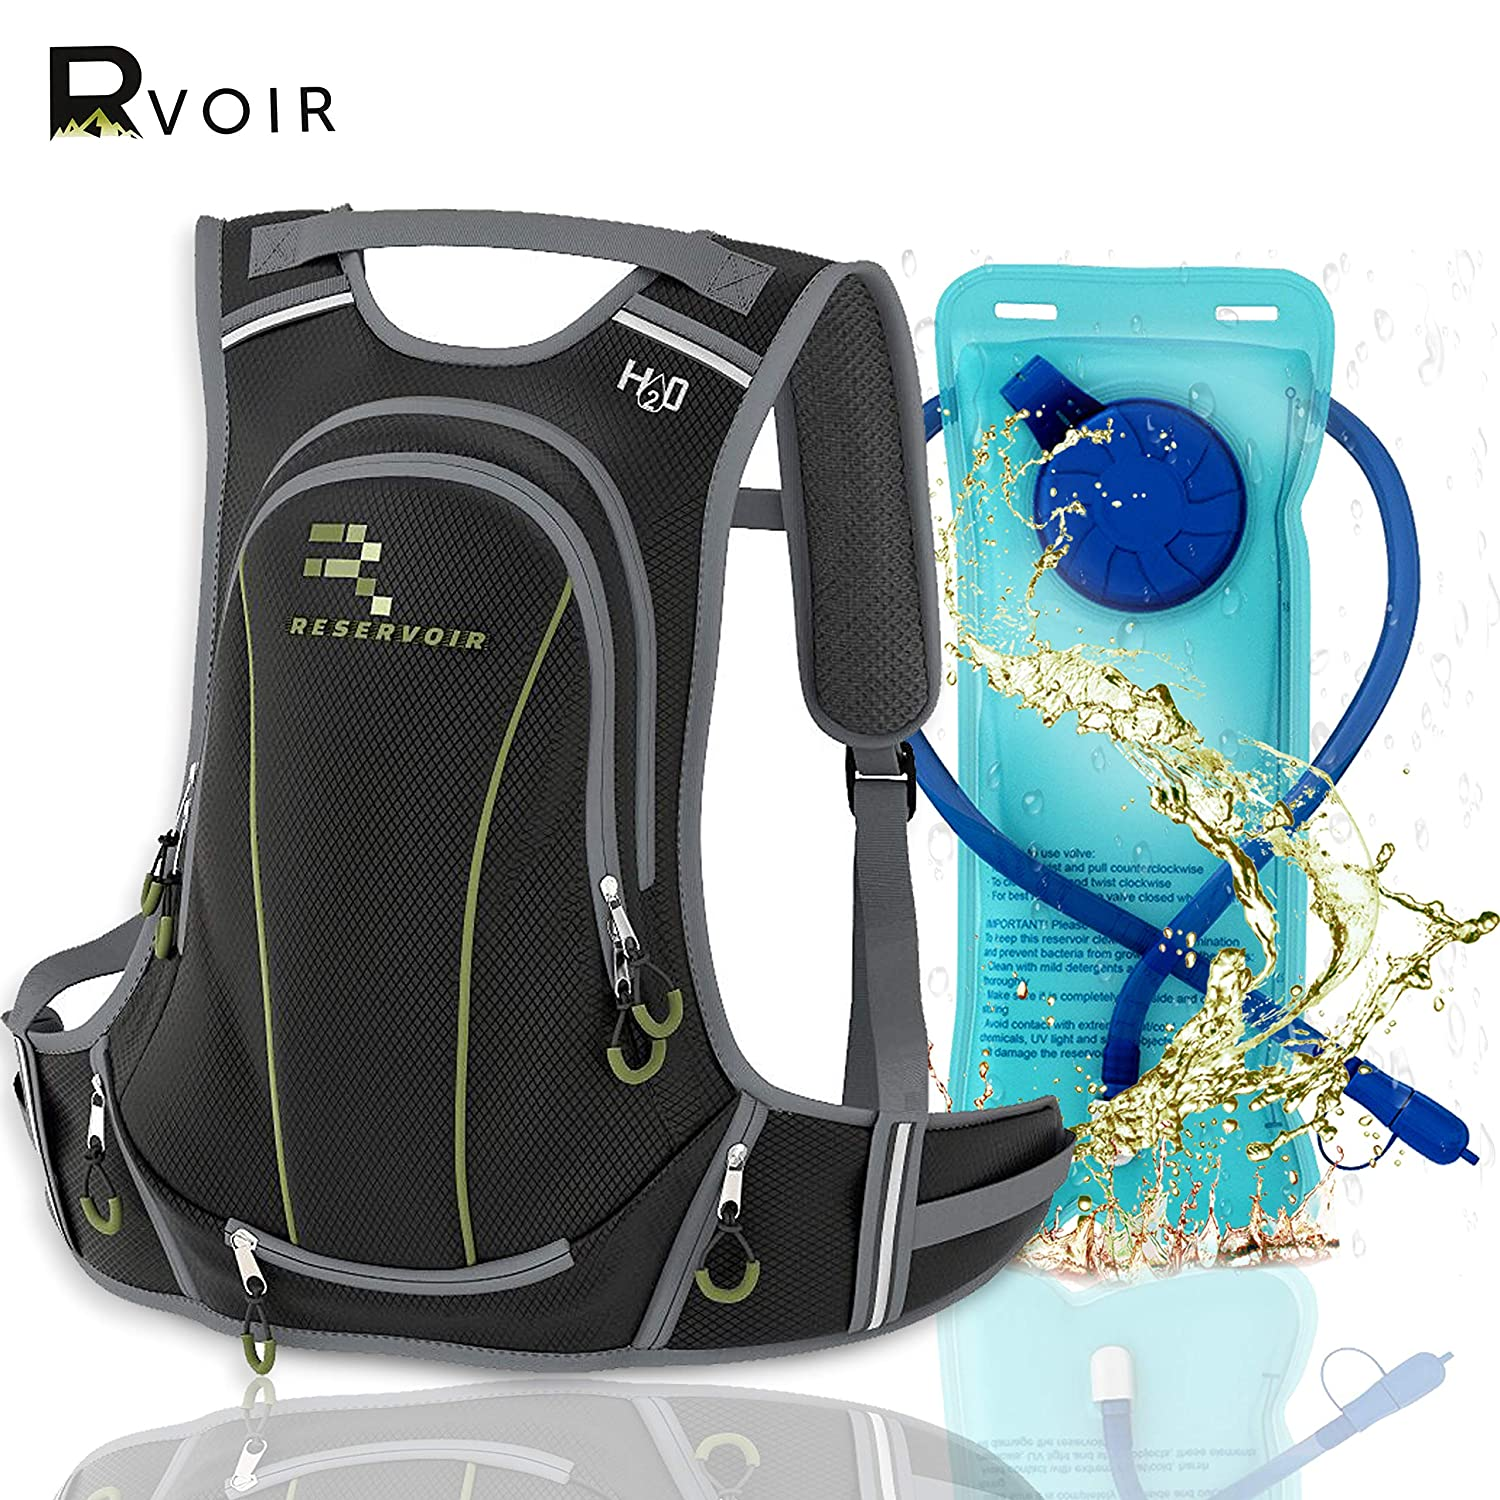 RVOIR Gear Insulated Hydration Backpack -Hiking Backpack With Water Bladder Leak Proof 2L BPA FREE Insulated Backpack Cooler Keeps Cool 4 Hours Durable Hydration Pack For Hiking, Running, Cycling